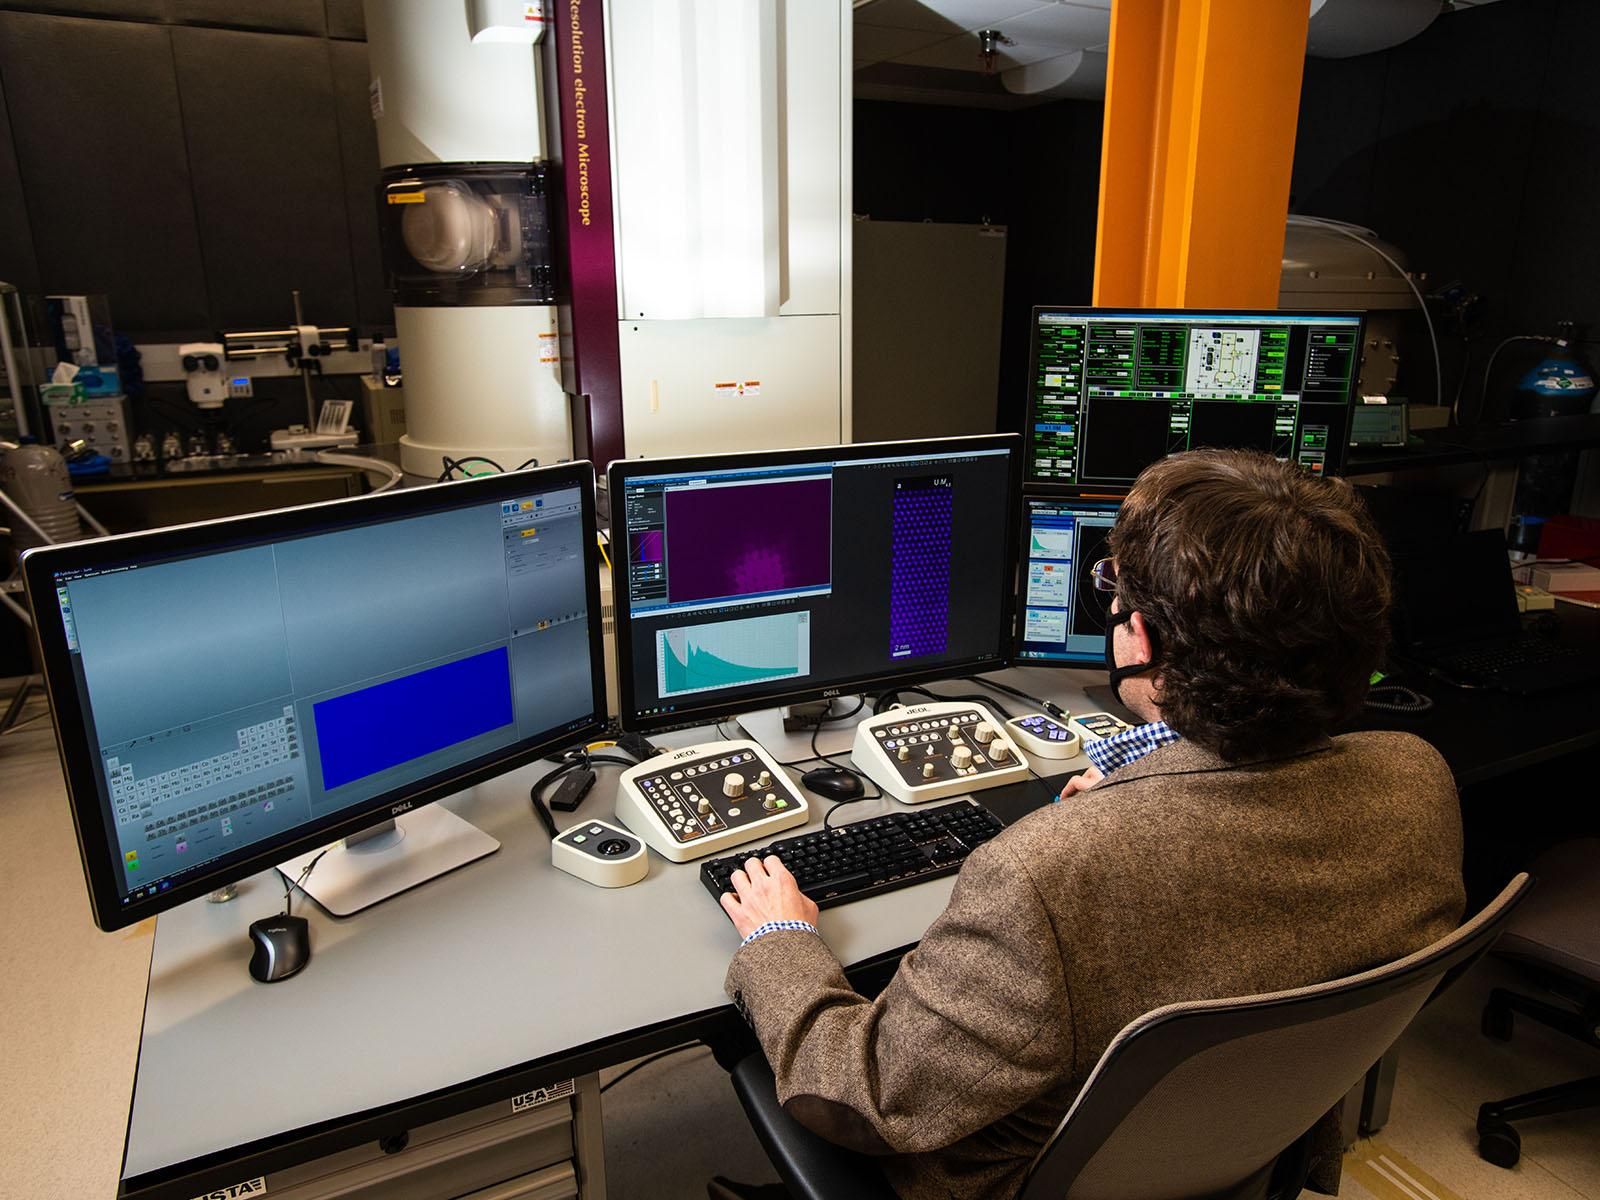 Scientist Steven Spurgeon sits at a desk with a keyboard and multiple monitors while he controls a huge microscope in the room.